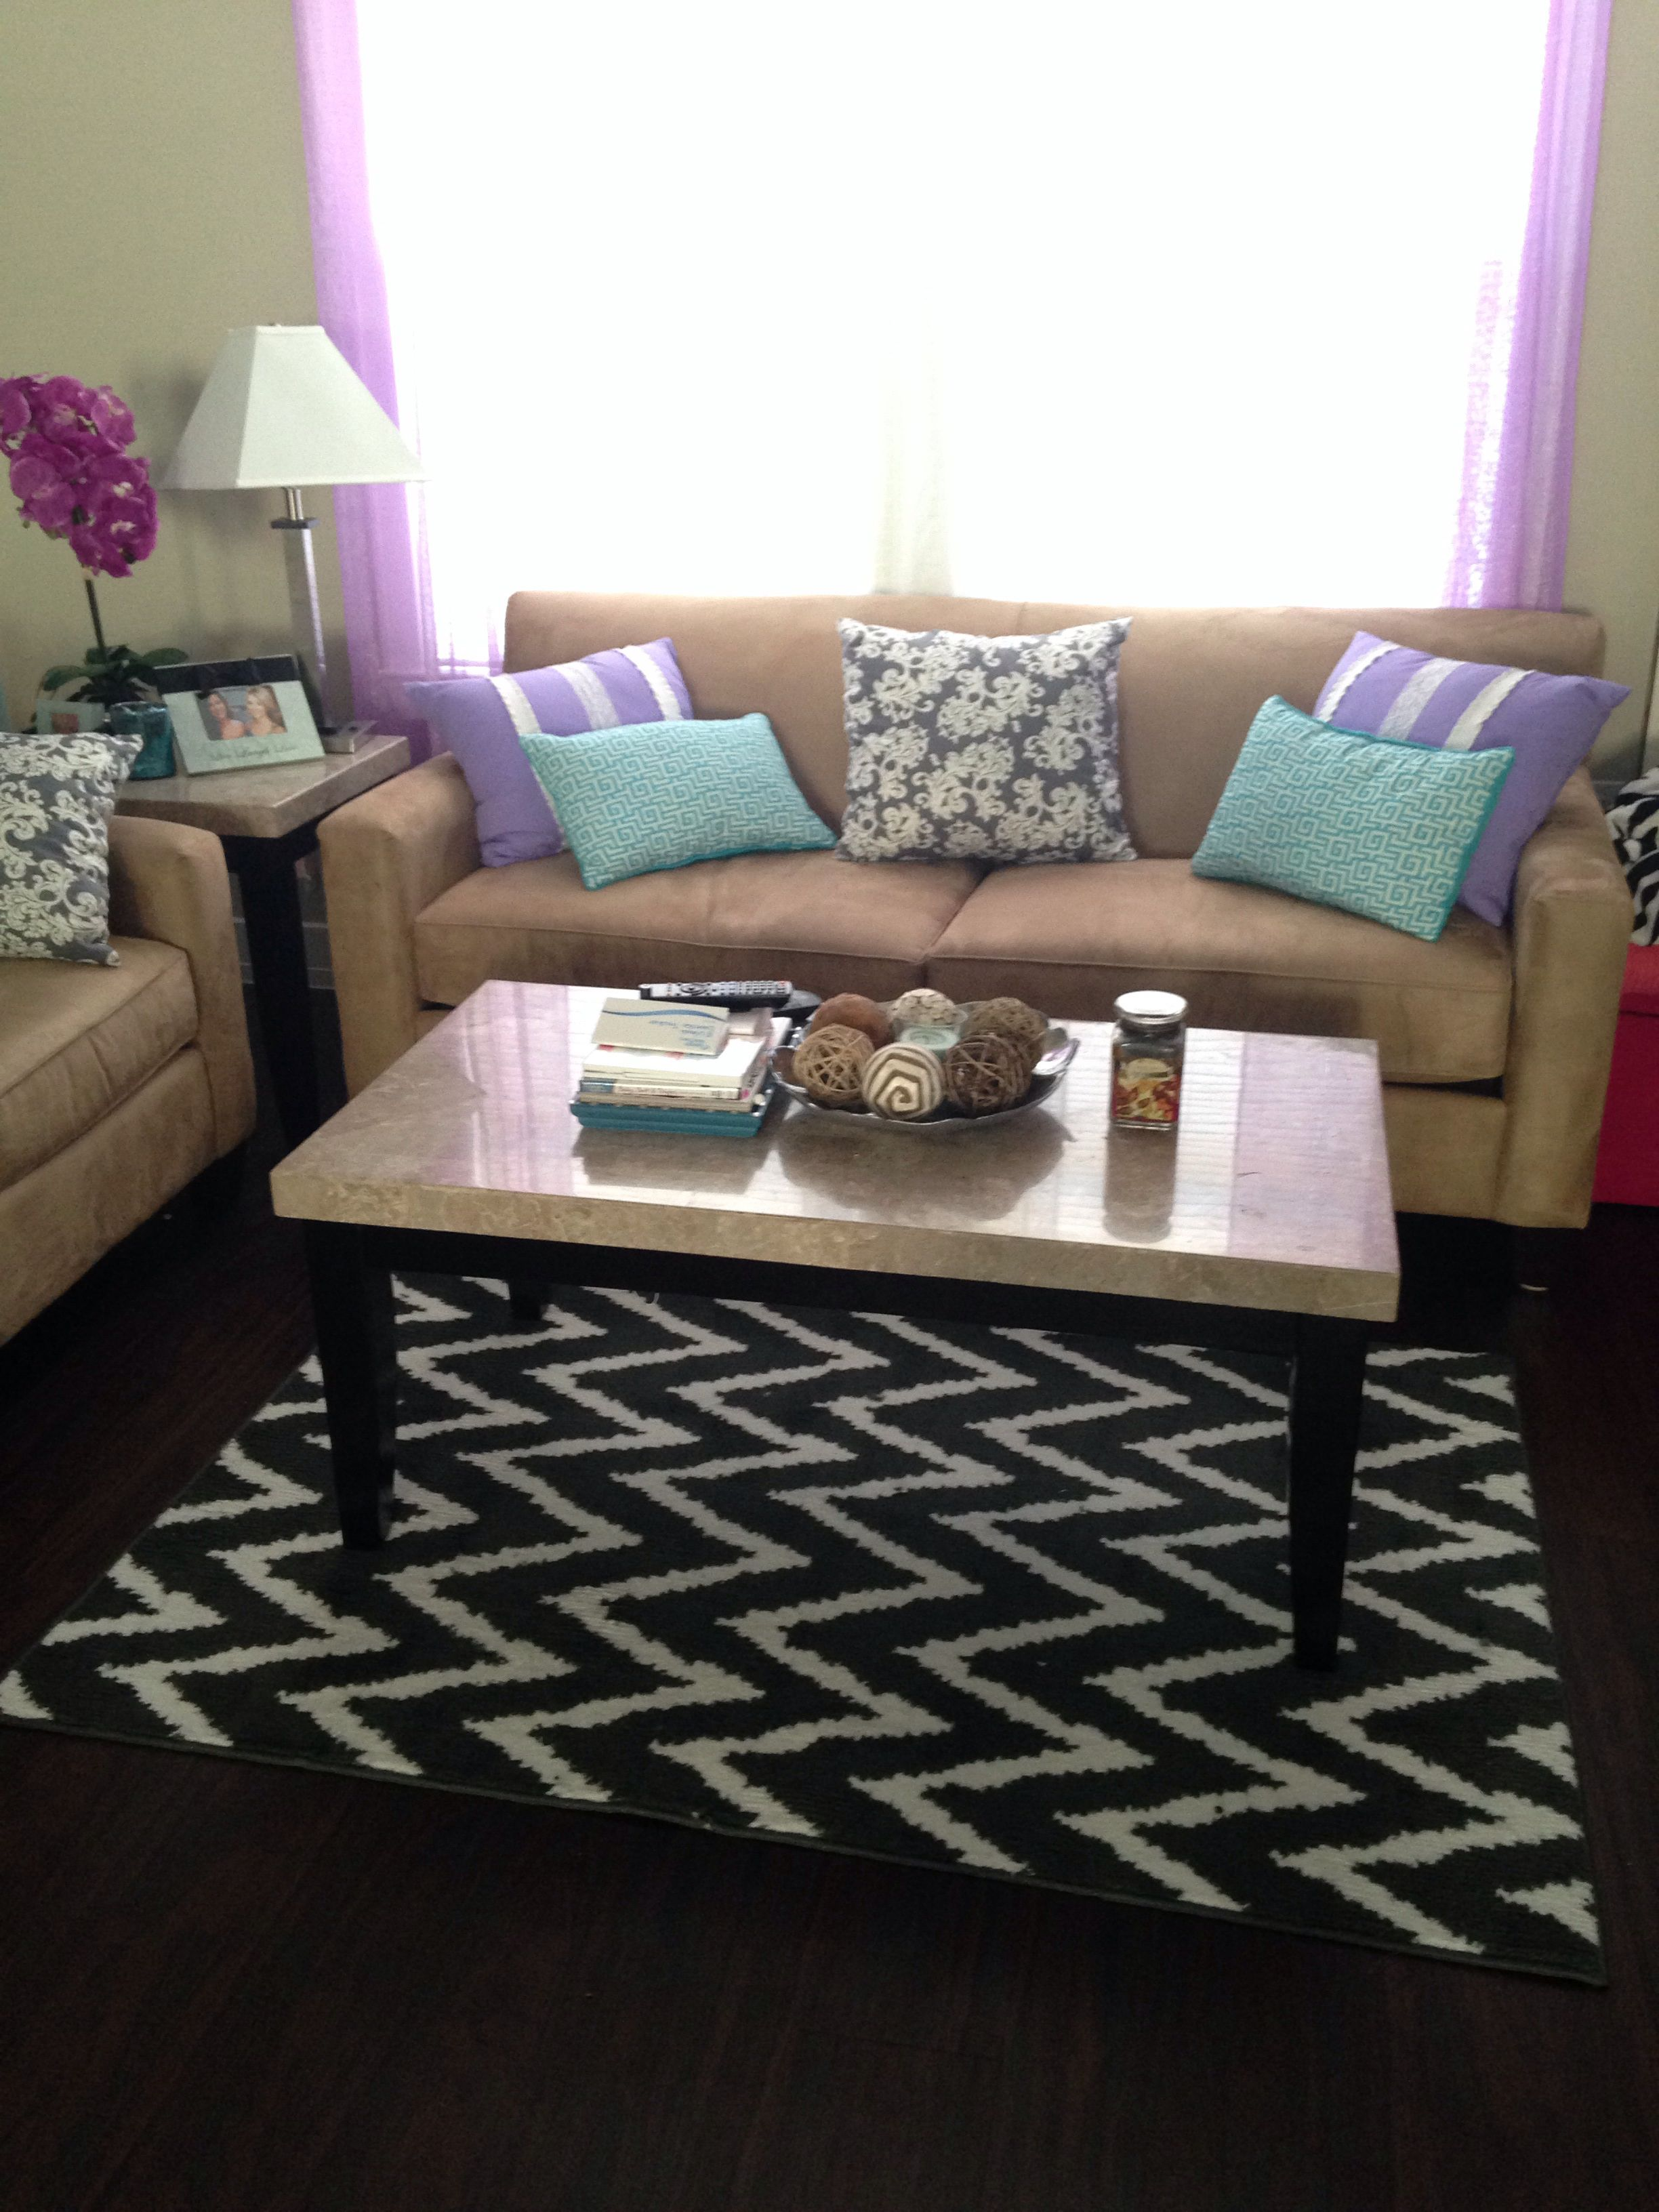 Redecorating Living Room: So Simple...But More The Look I'm Going For In